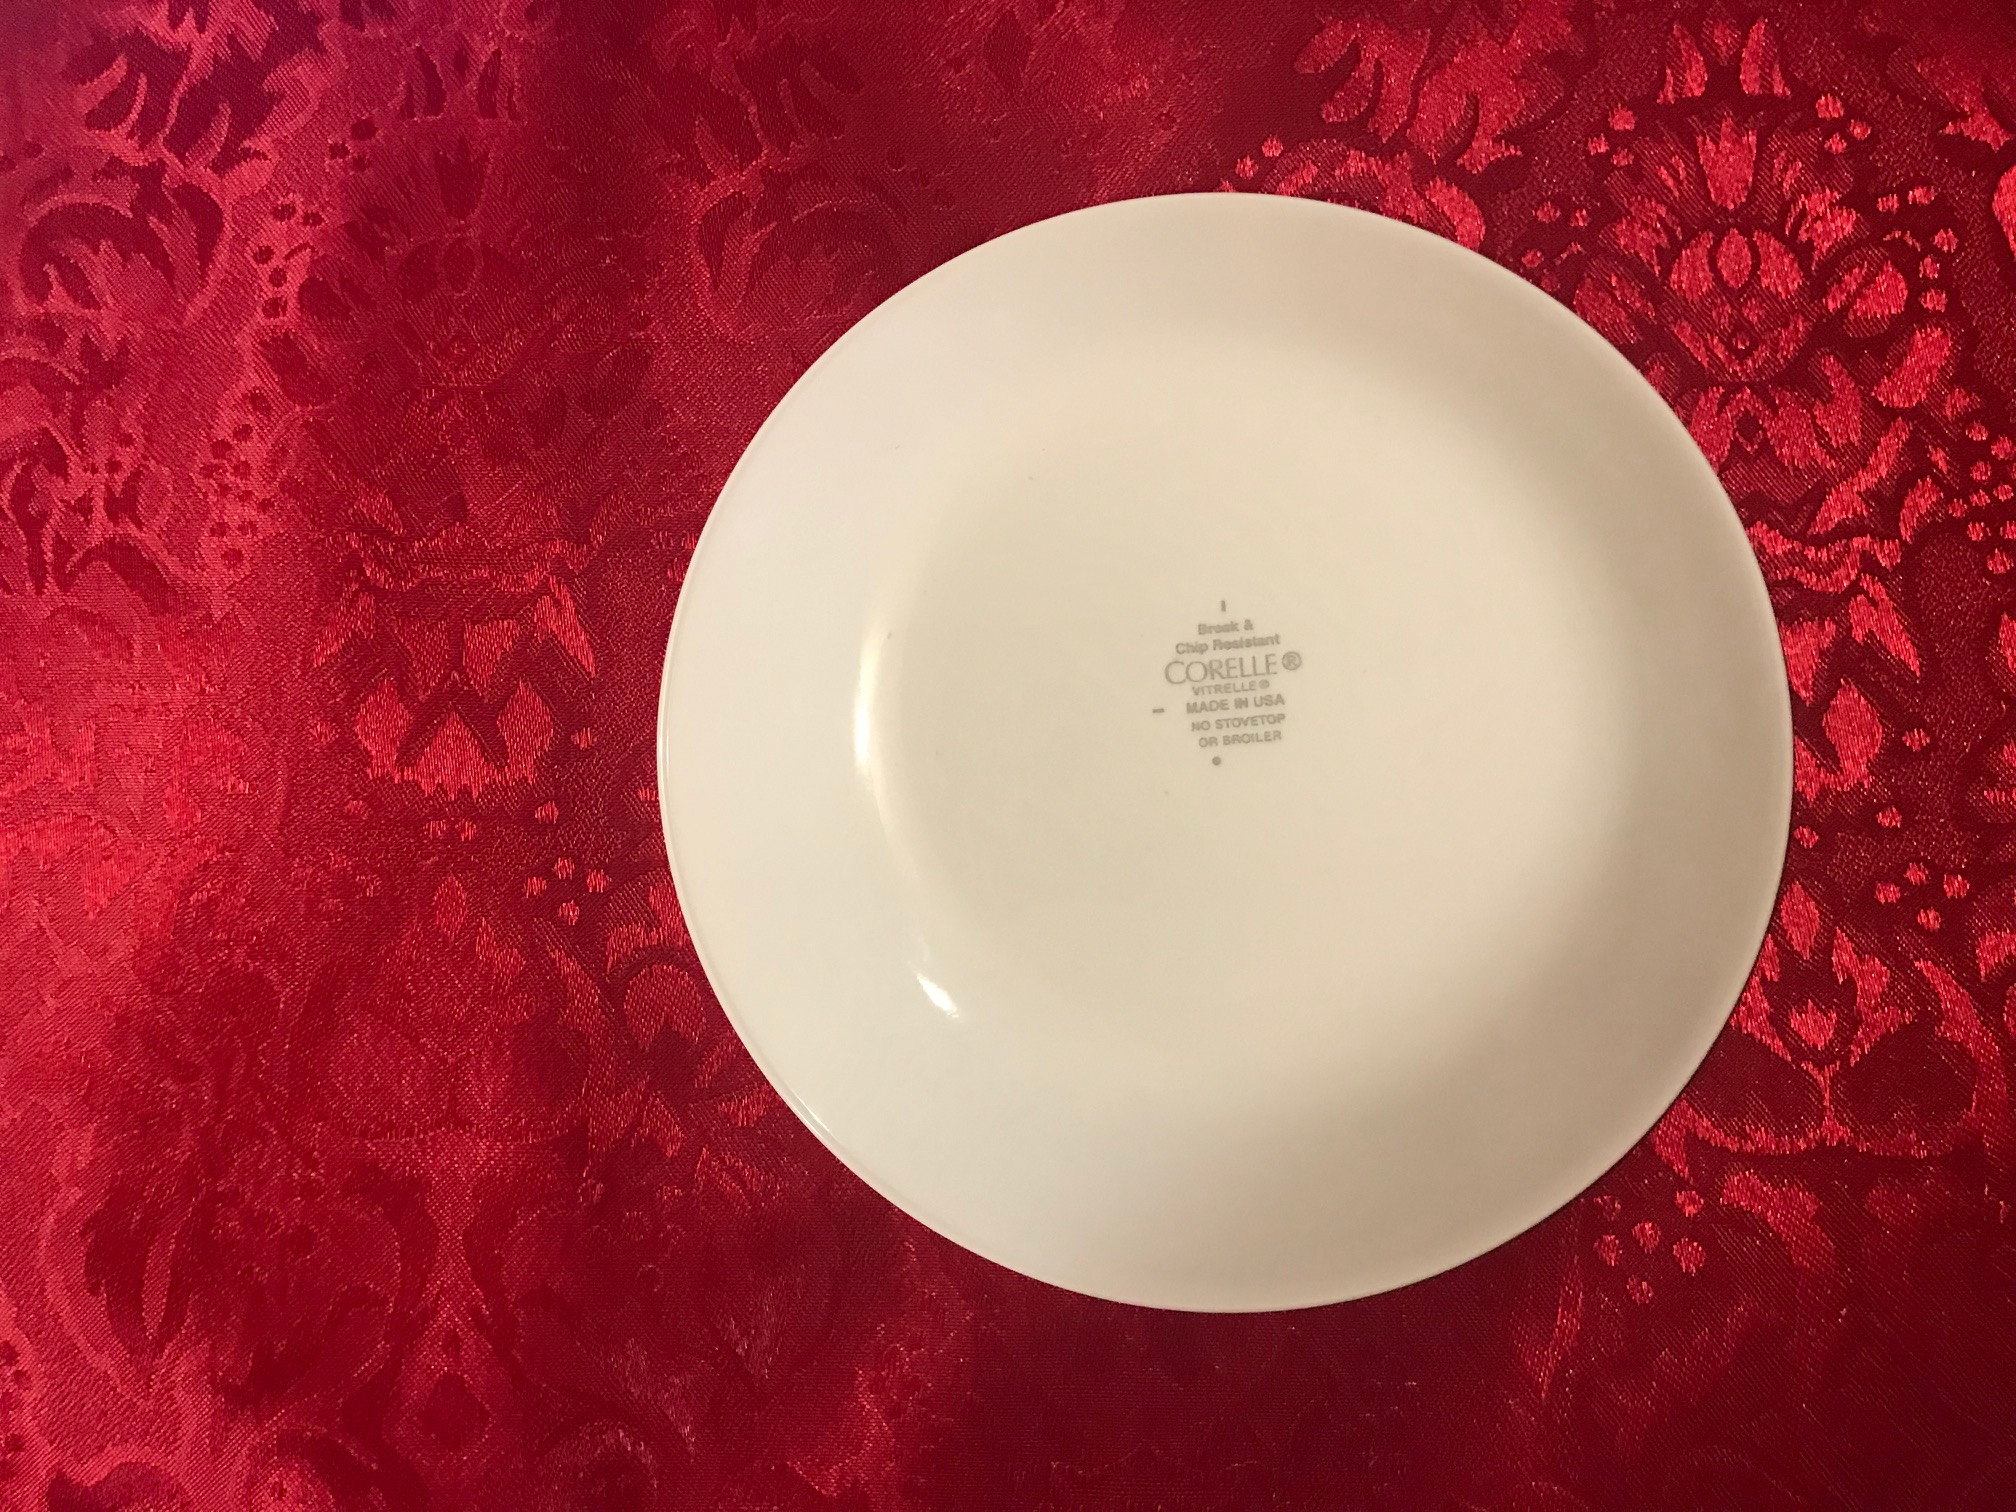 Small Corelle Plate With Red Floral Border: 2,788 ppm Cadmium + Arsenic